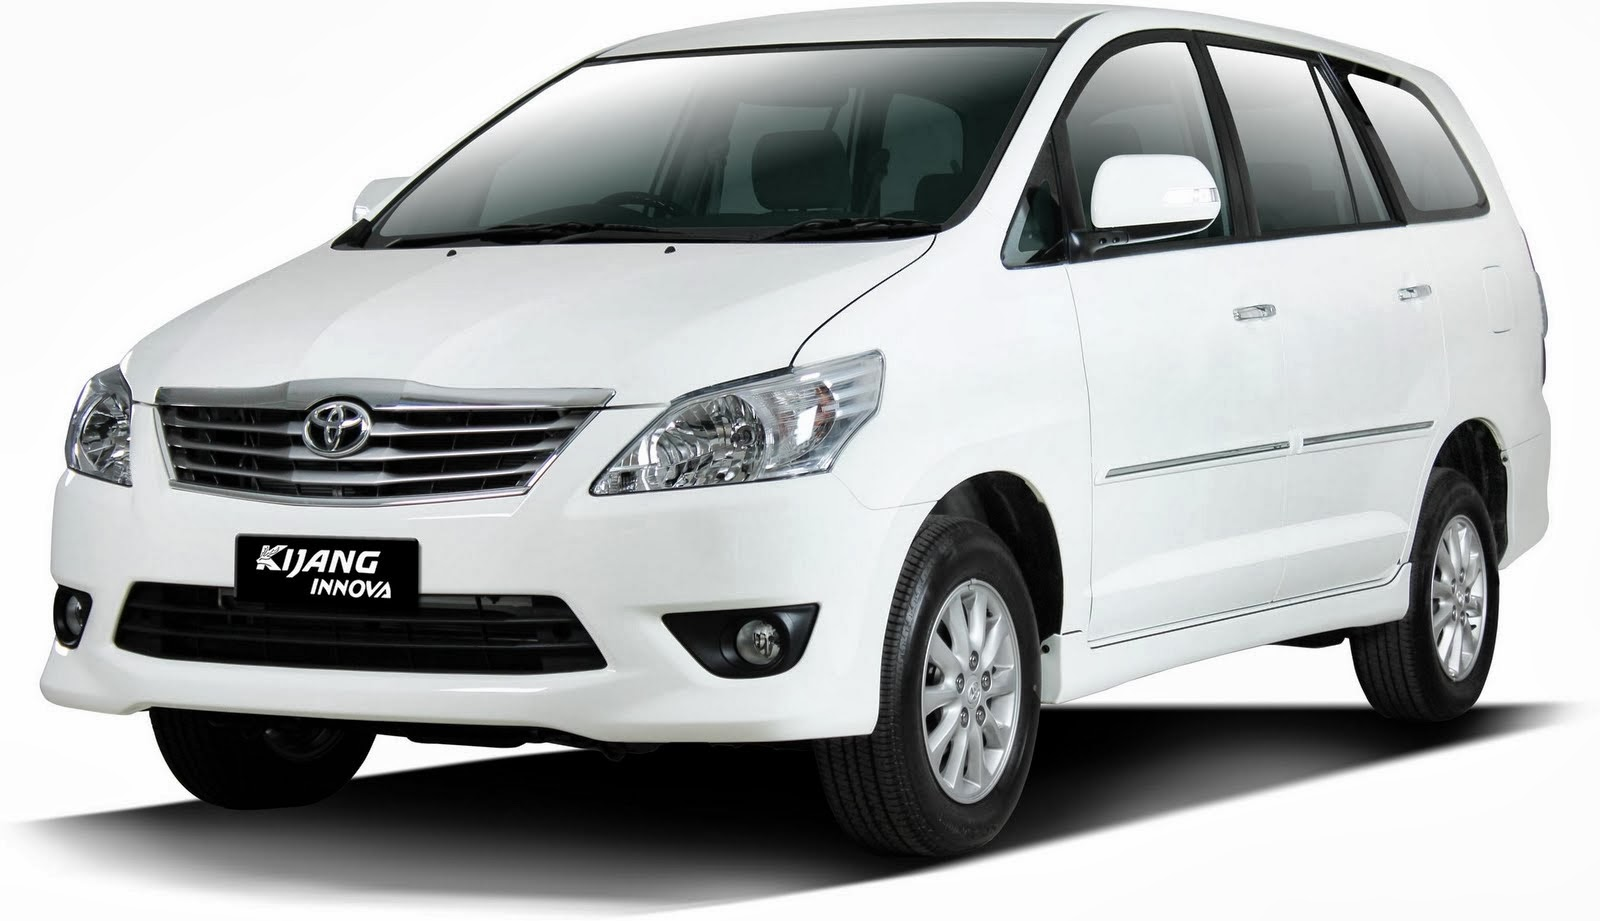 grand new avanza terbaru vs calya full car pictures september 2013